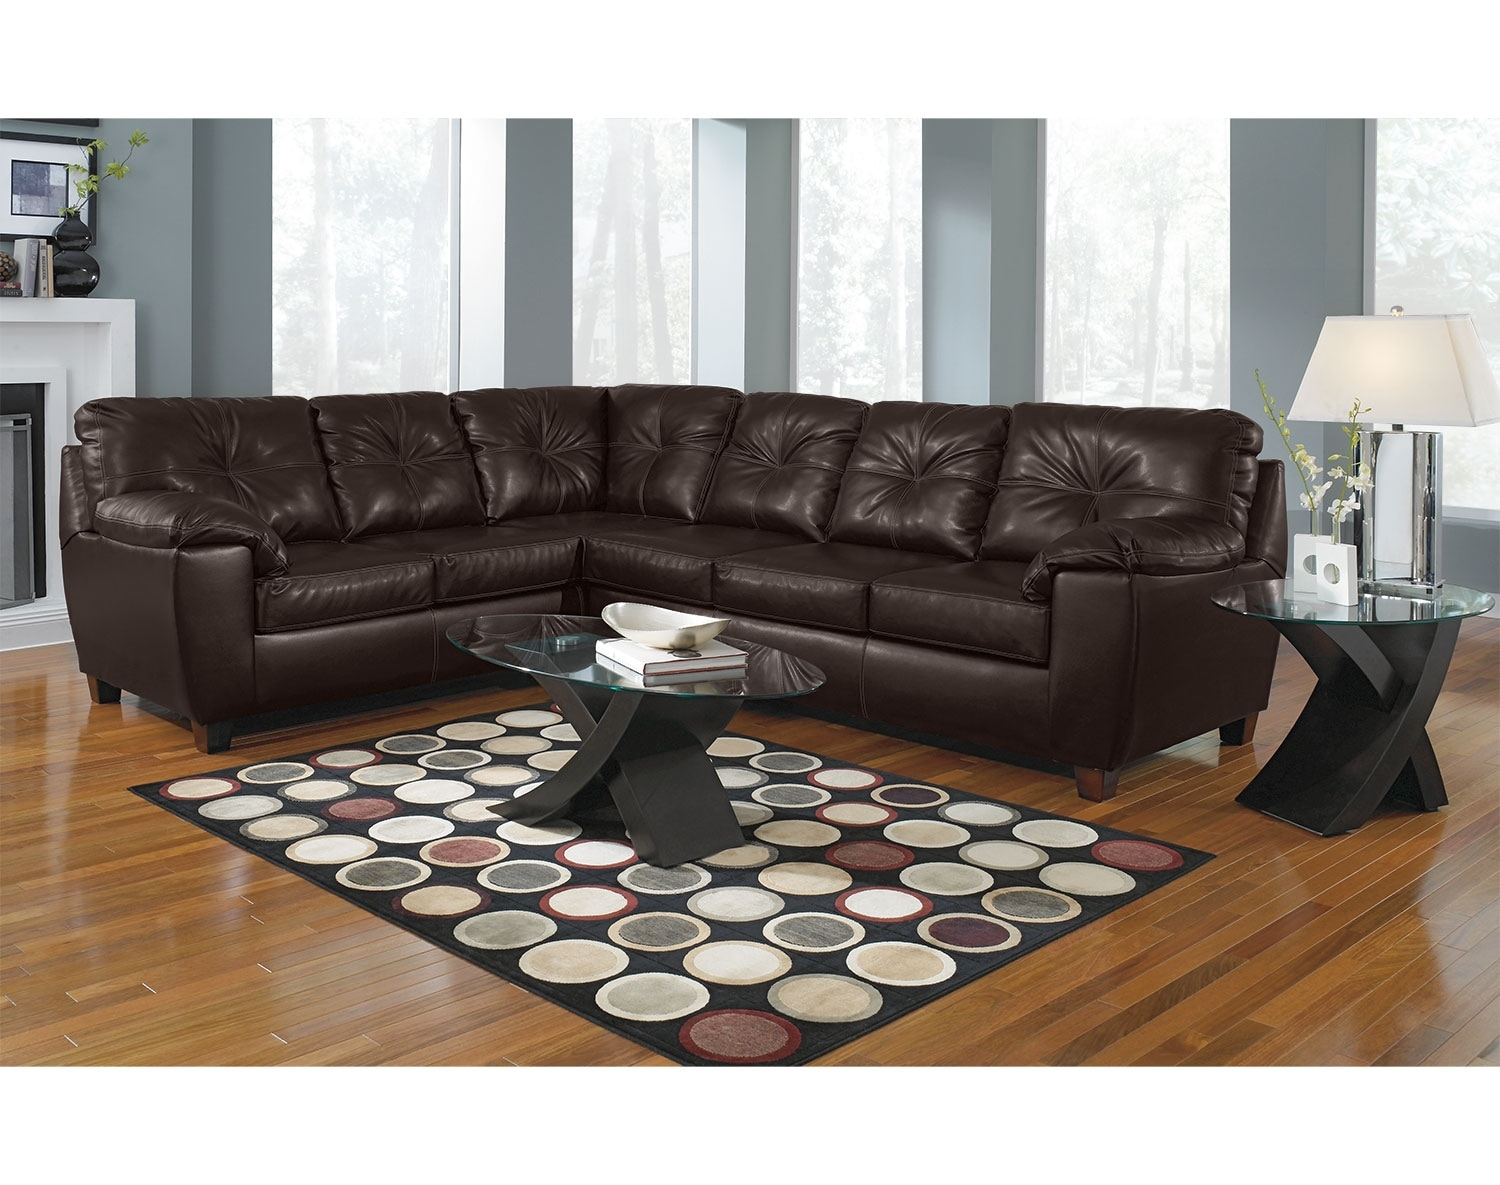 Leather sofa factory outlet engrossing modern sofas los for Furniture factory outlet